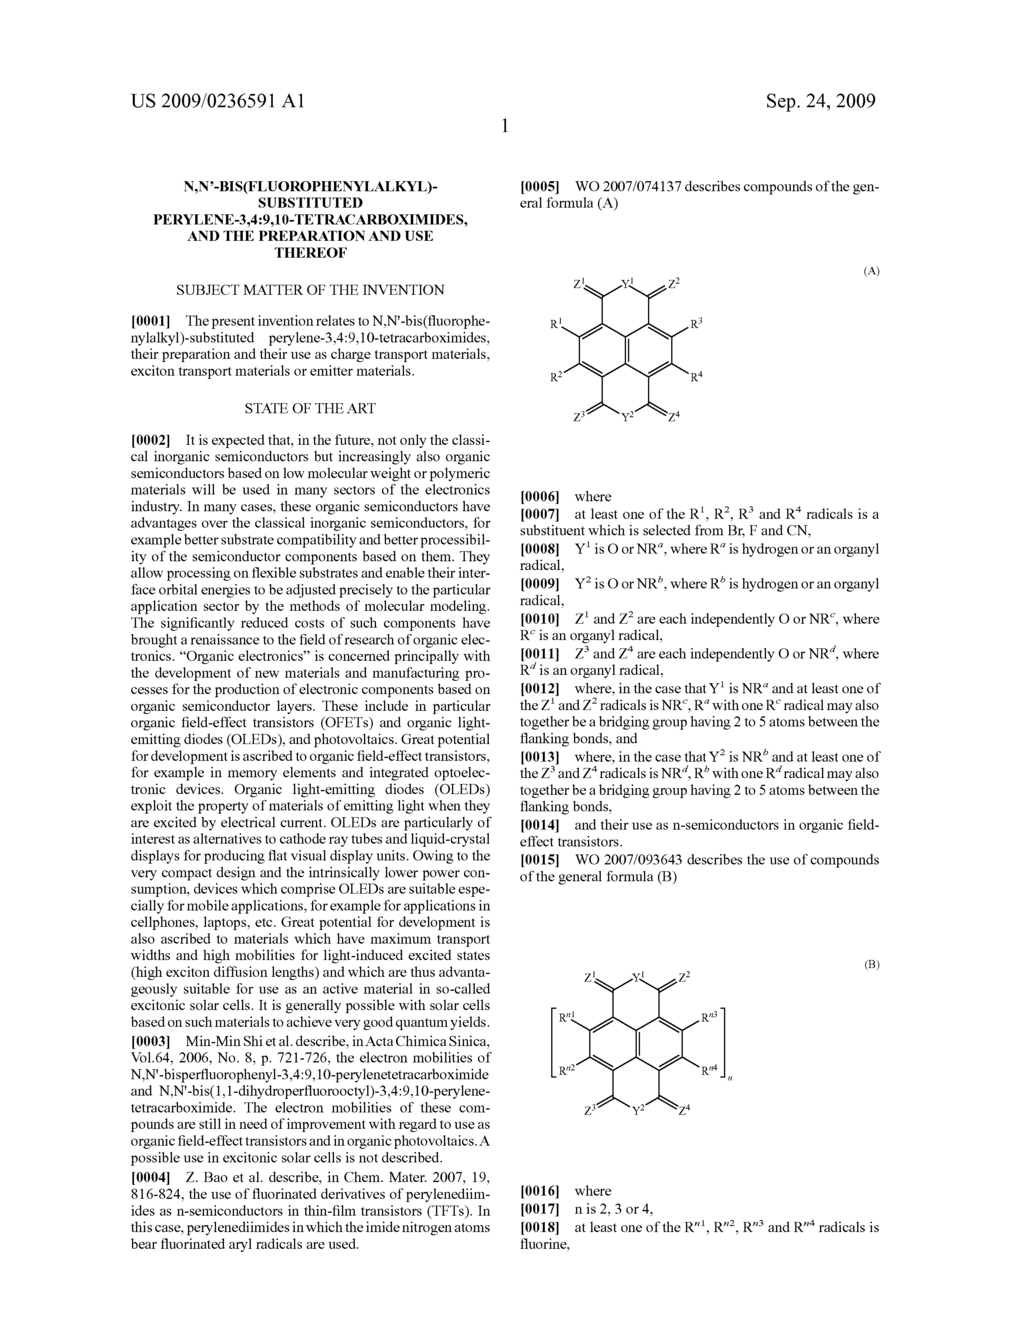 N,N'-BIS(FLUOROPHENYLALKYL)-SUBSTITUTED PERYLENE-3,4:9,10-TETRACARBOXIMIDES, AND THE PREPARATION AND USE THEREOF - diagram, schematic, and image 02